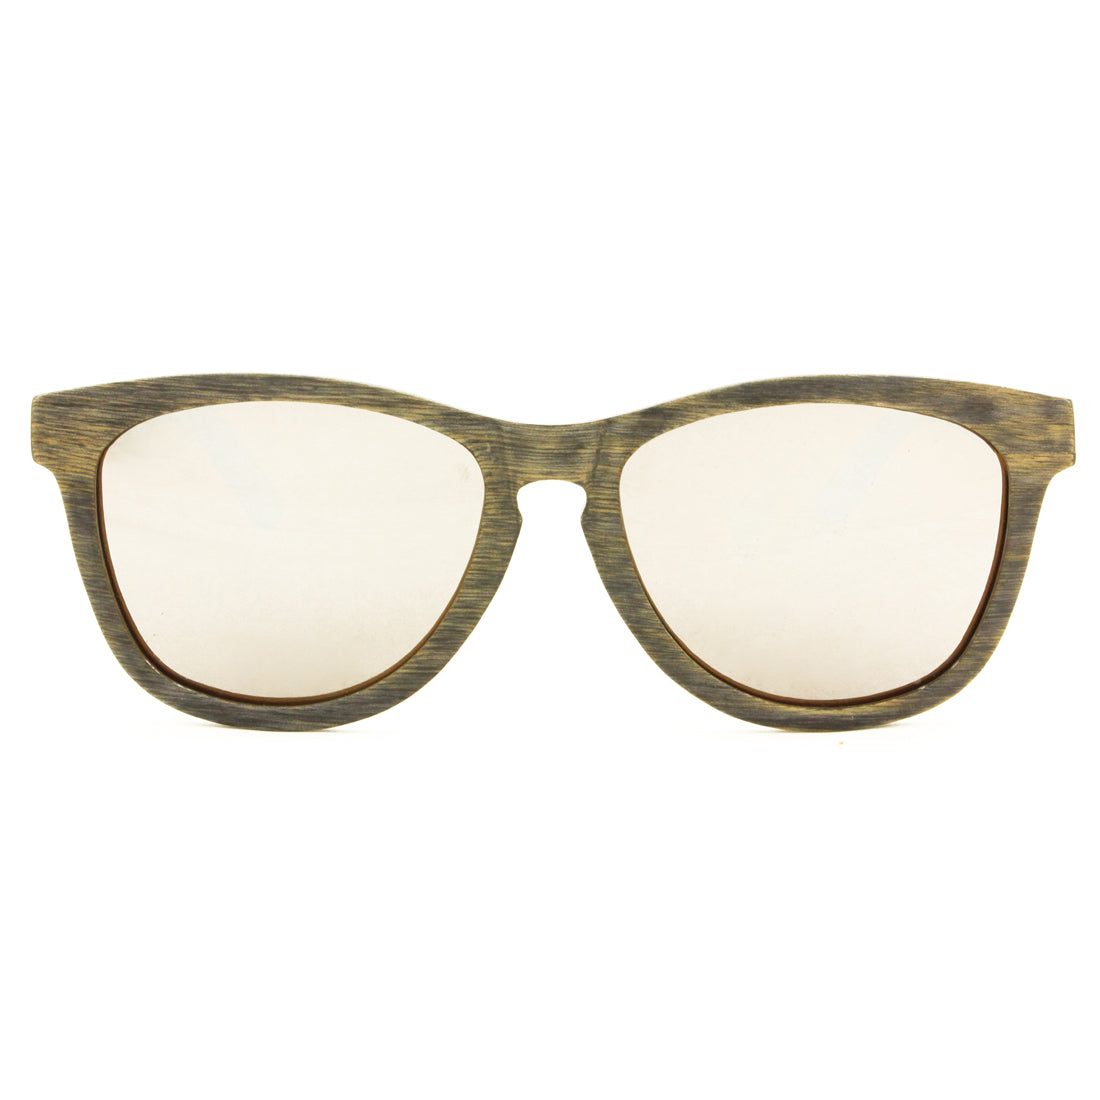 Kiwanda - Maple Wood Sunglasses